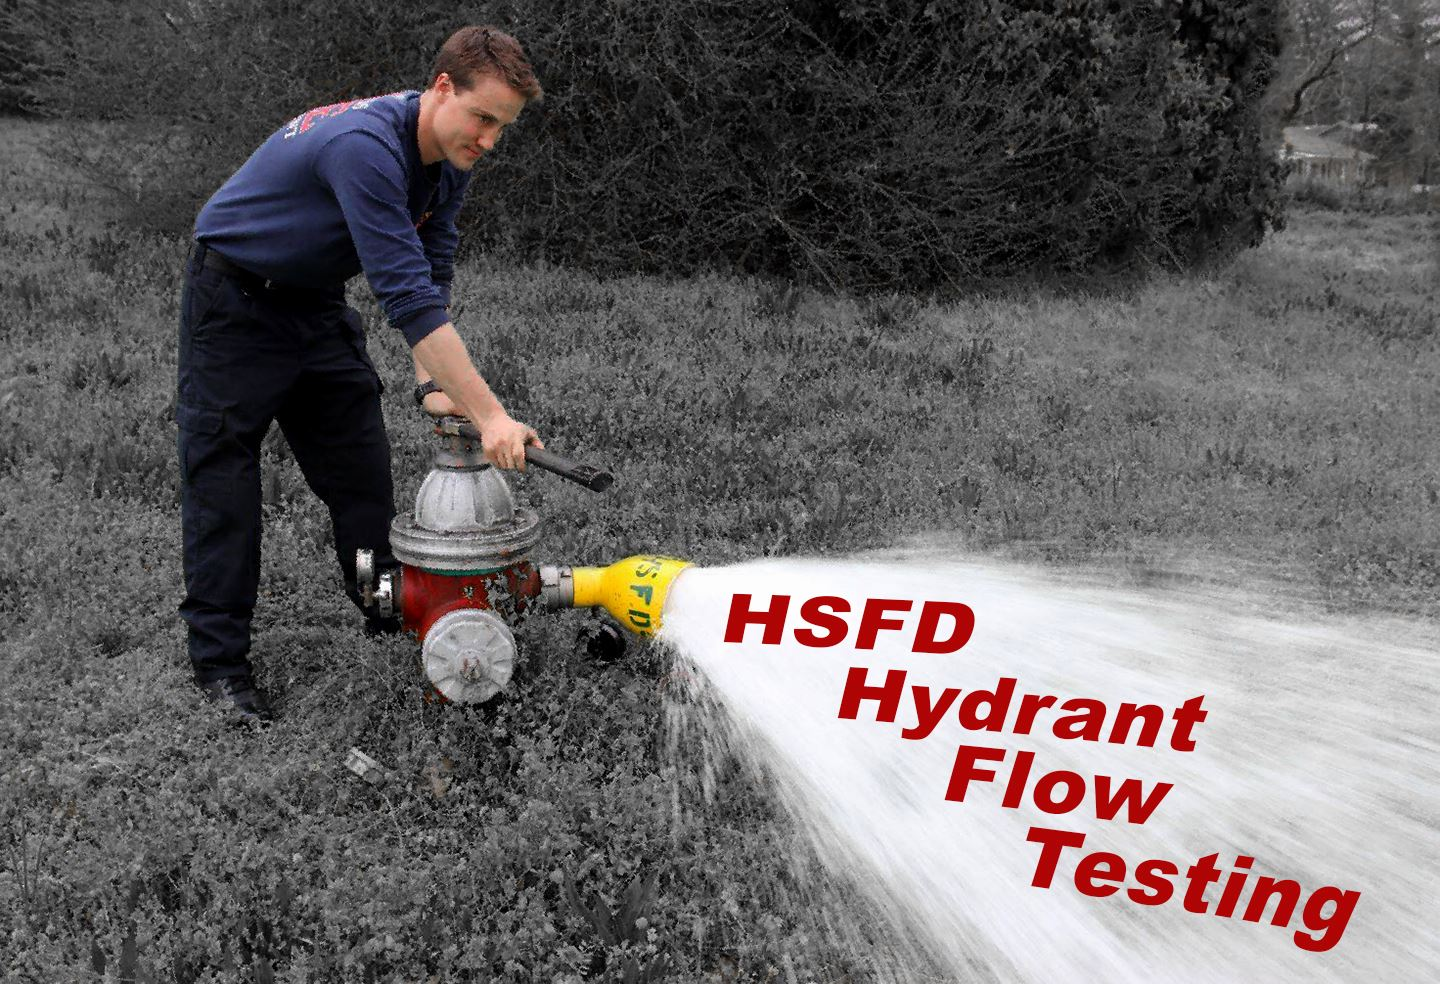 Hydrant Flow Testing graphic